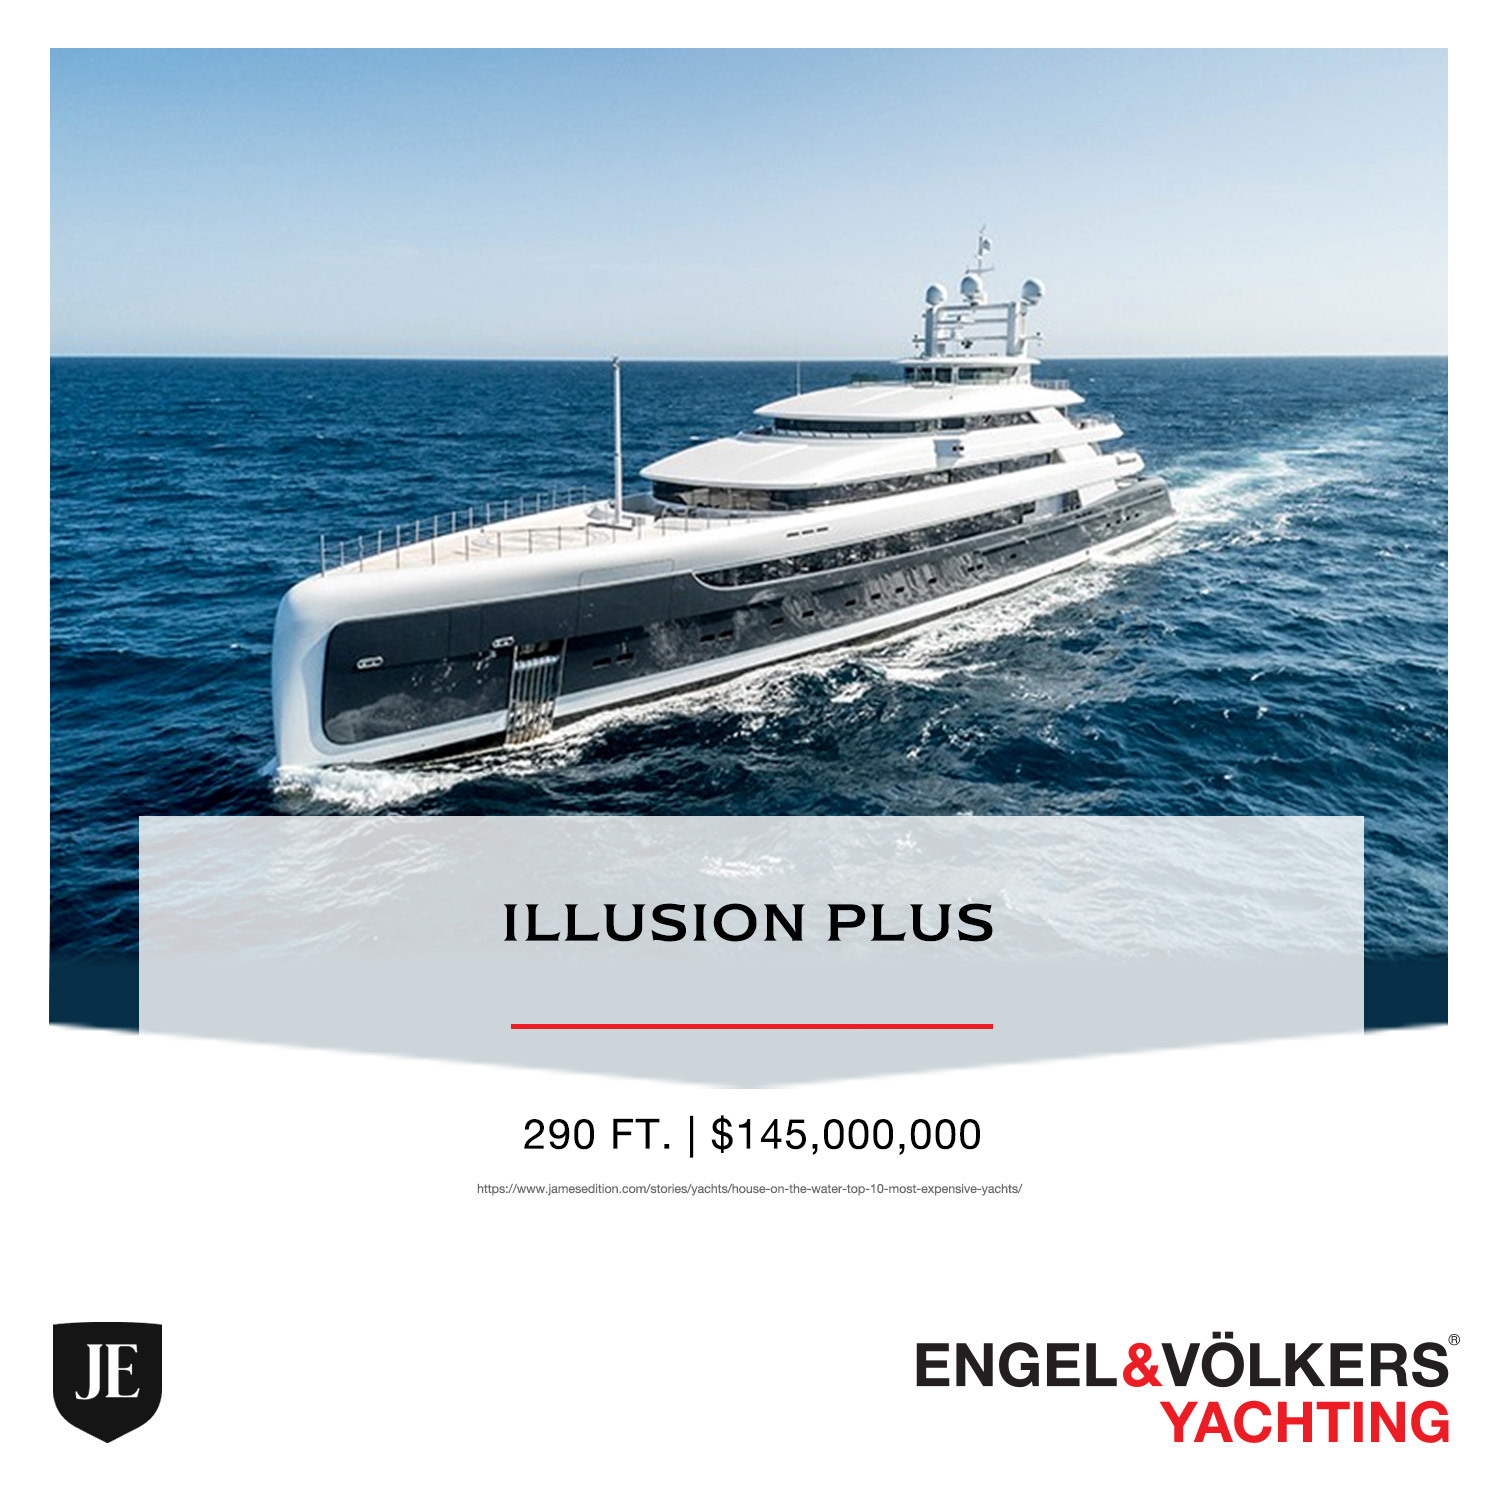 Illusion Plus YACHT ENGEL & VOLKERS YACHTING